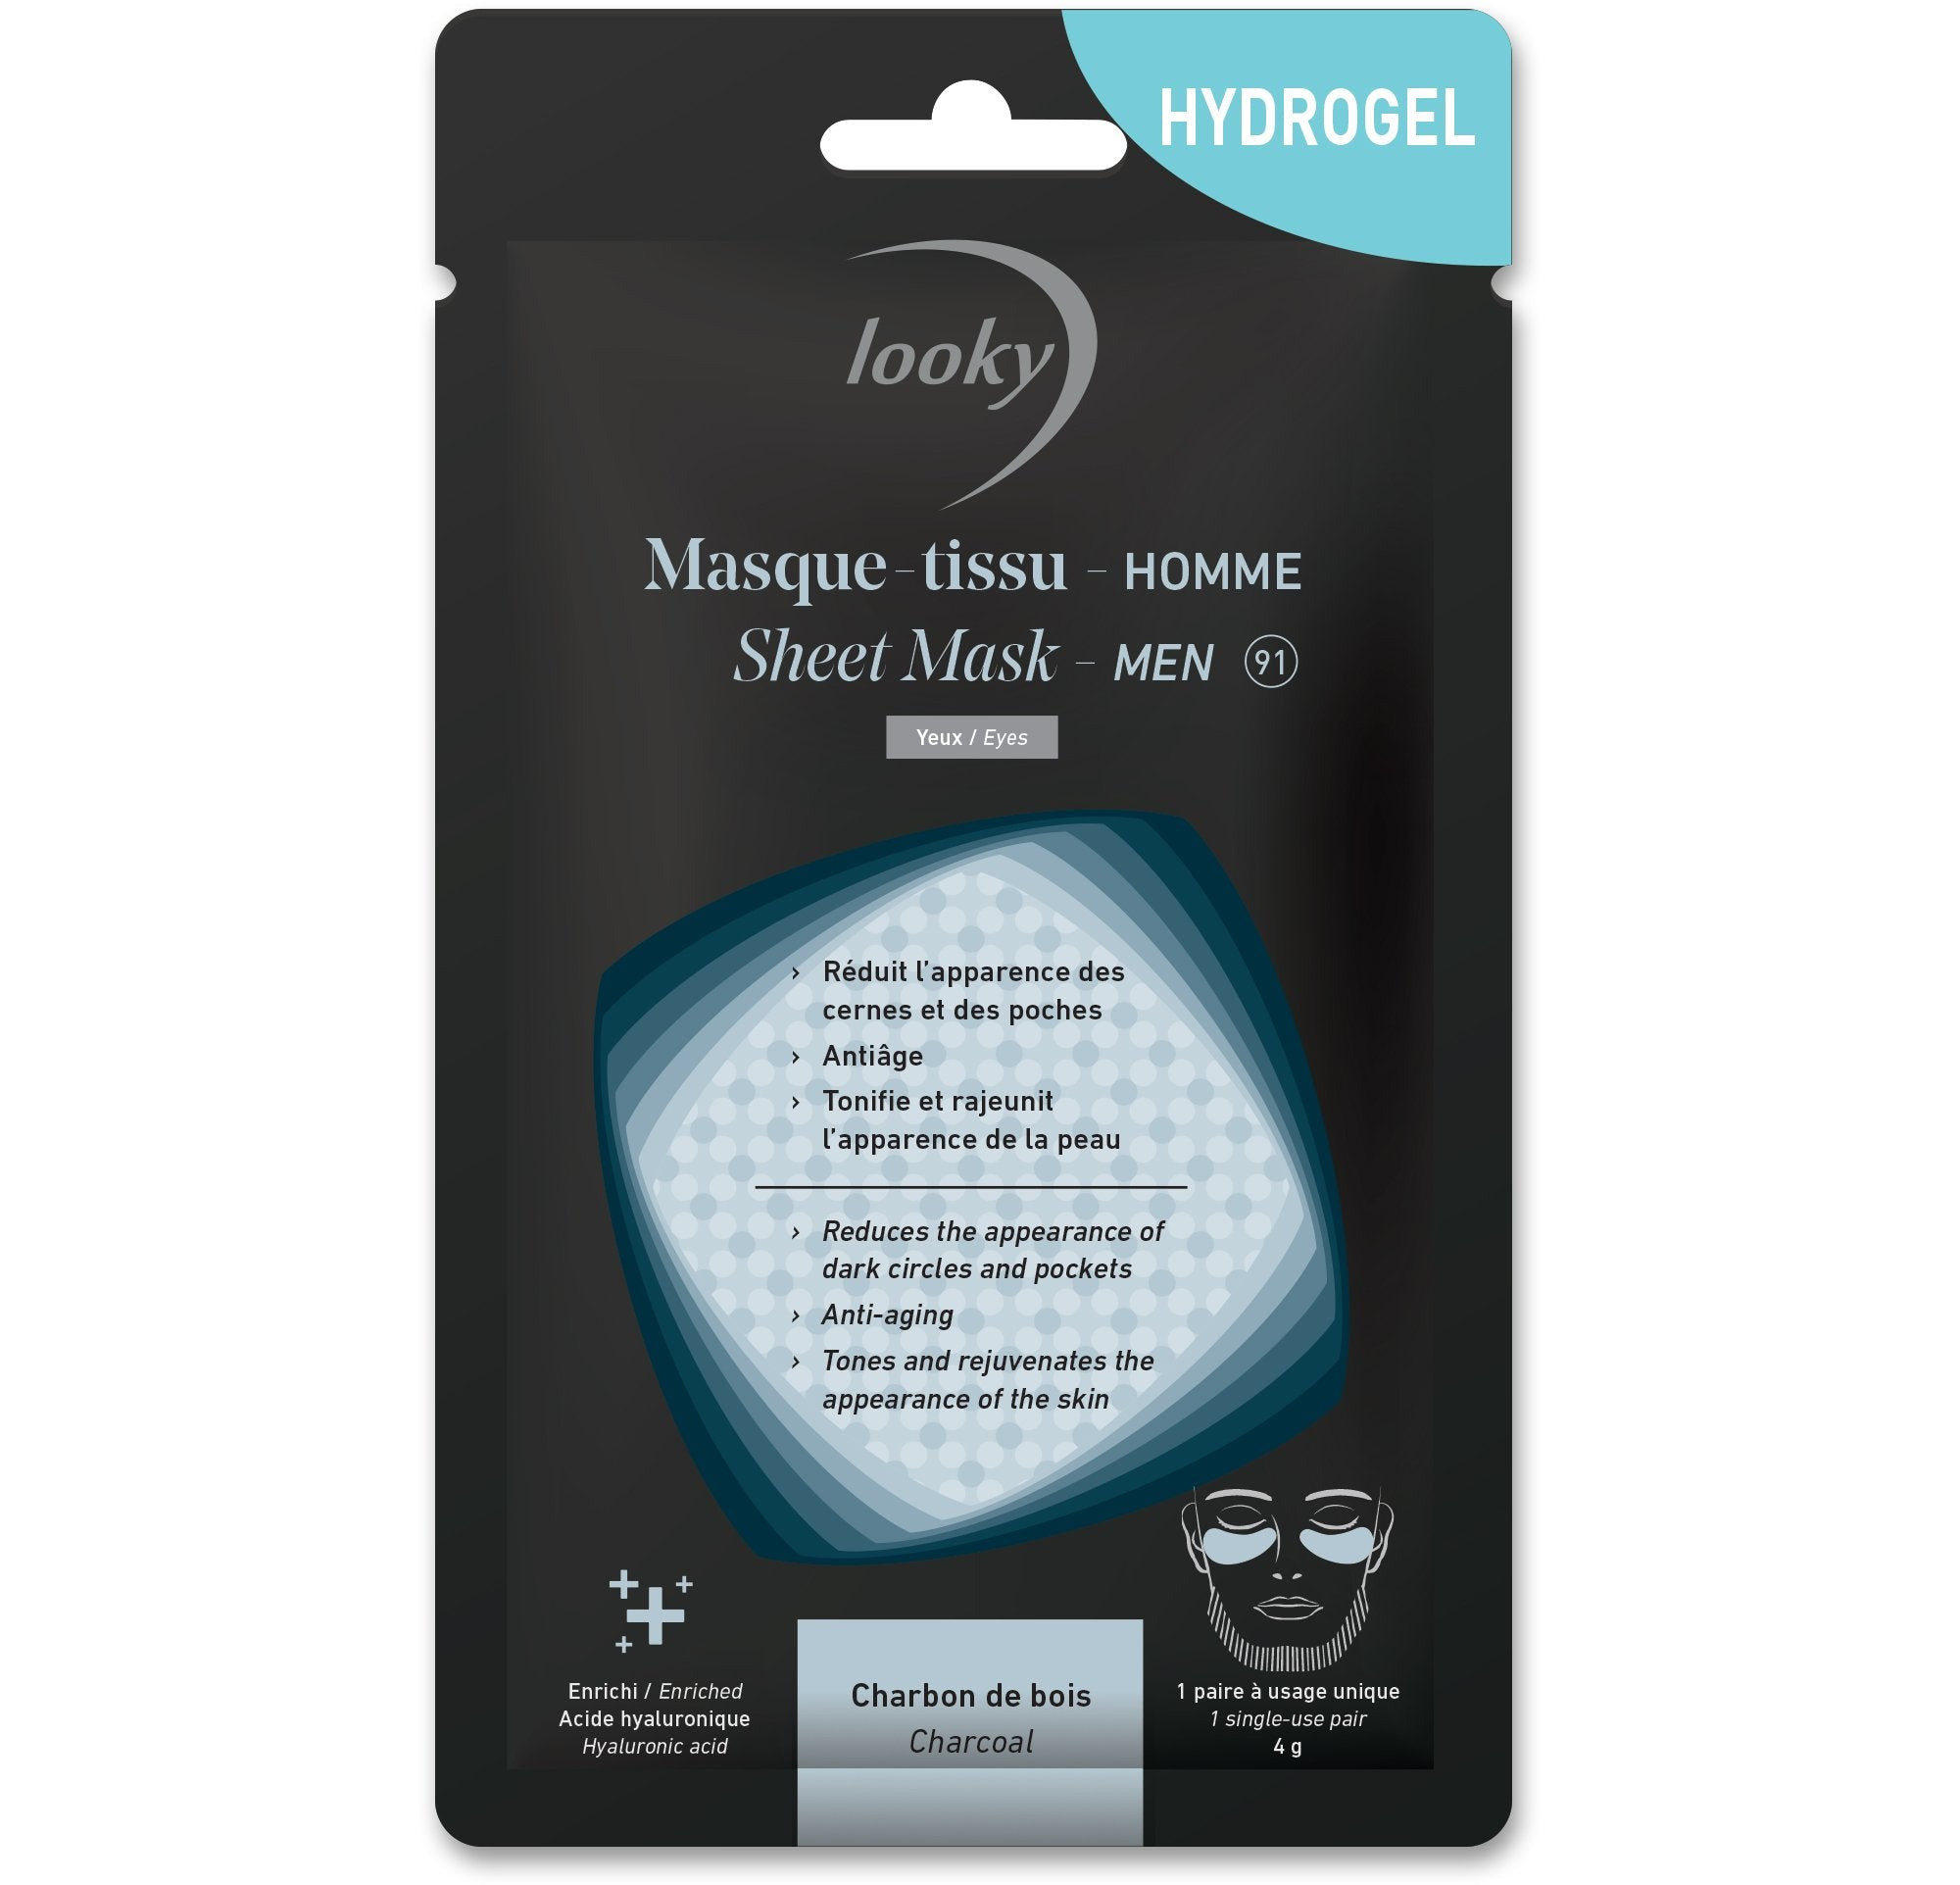 Looky masque-tissu HYDROGEL homme -  Yeux #91